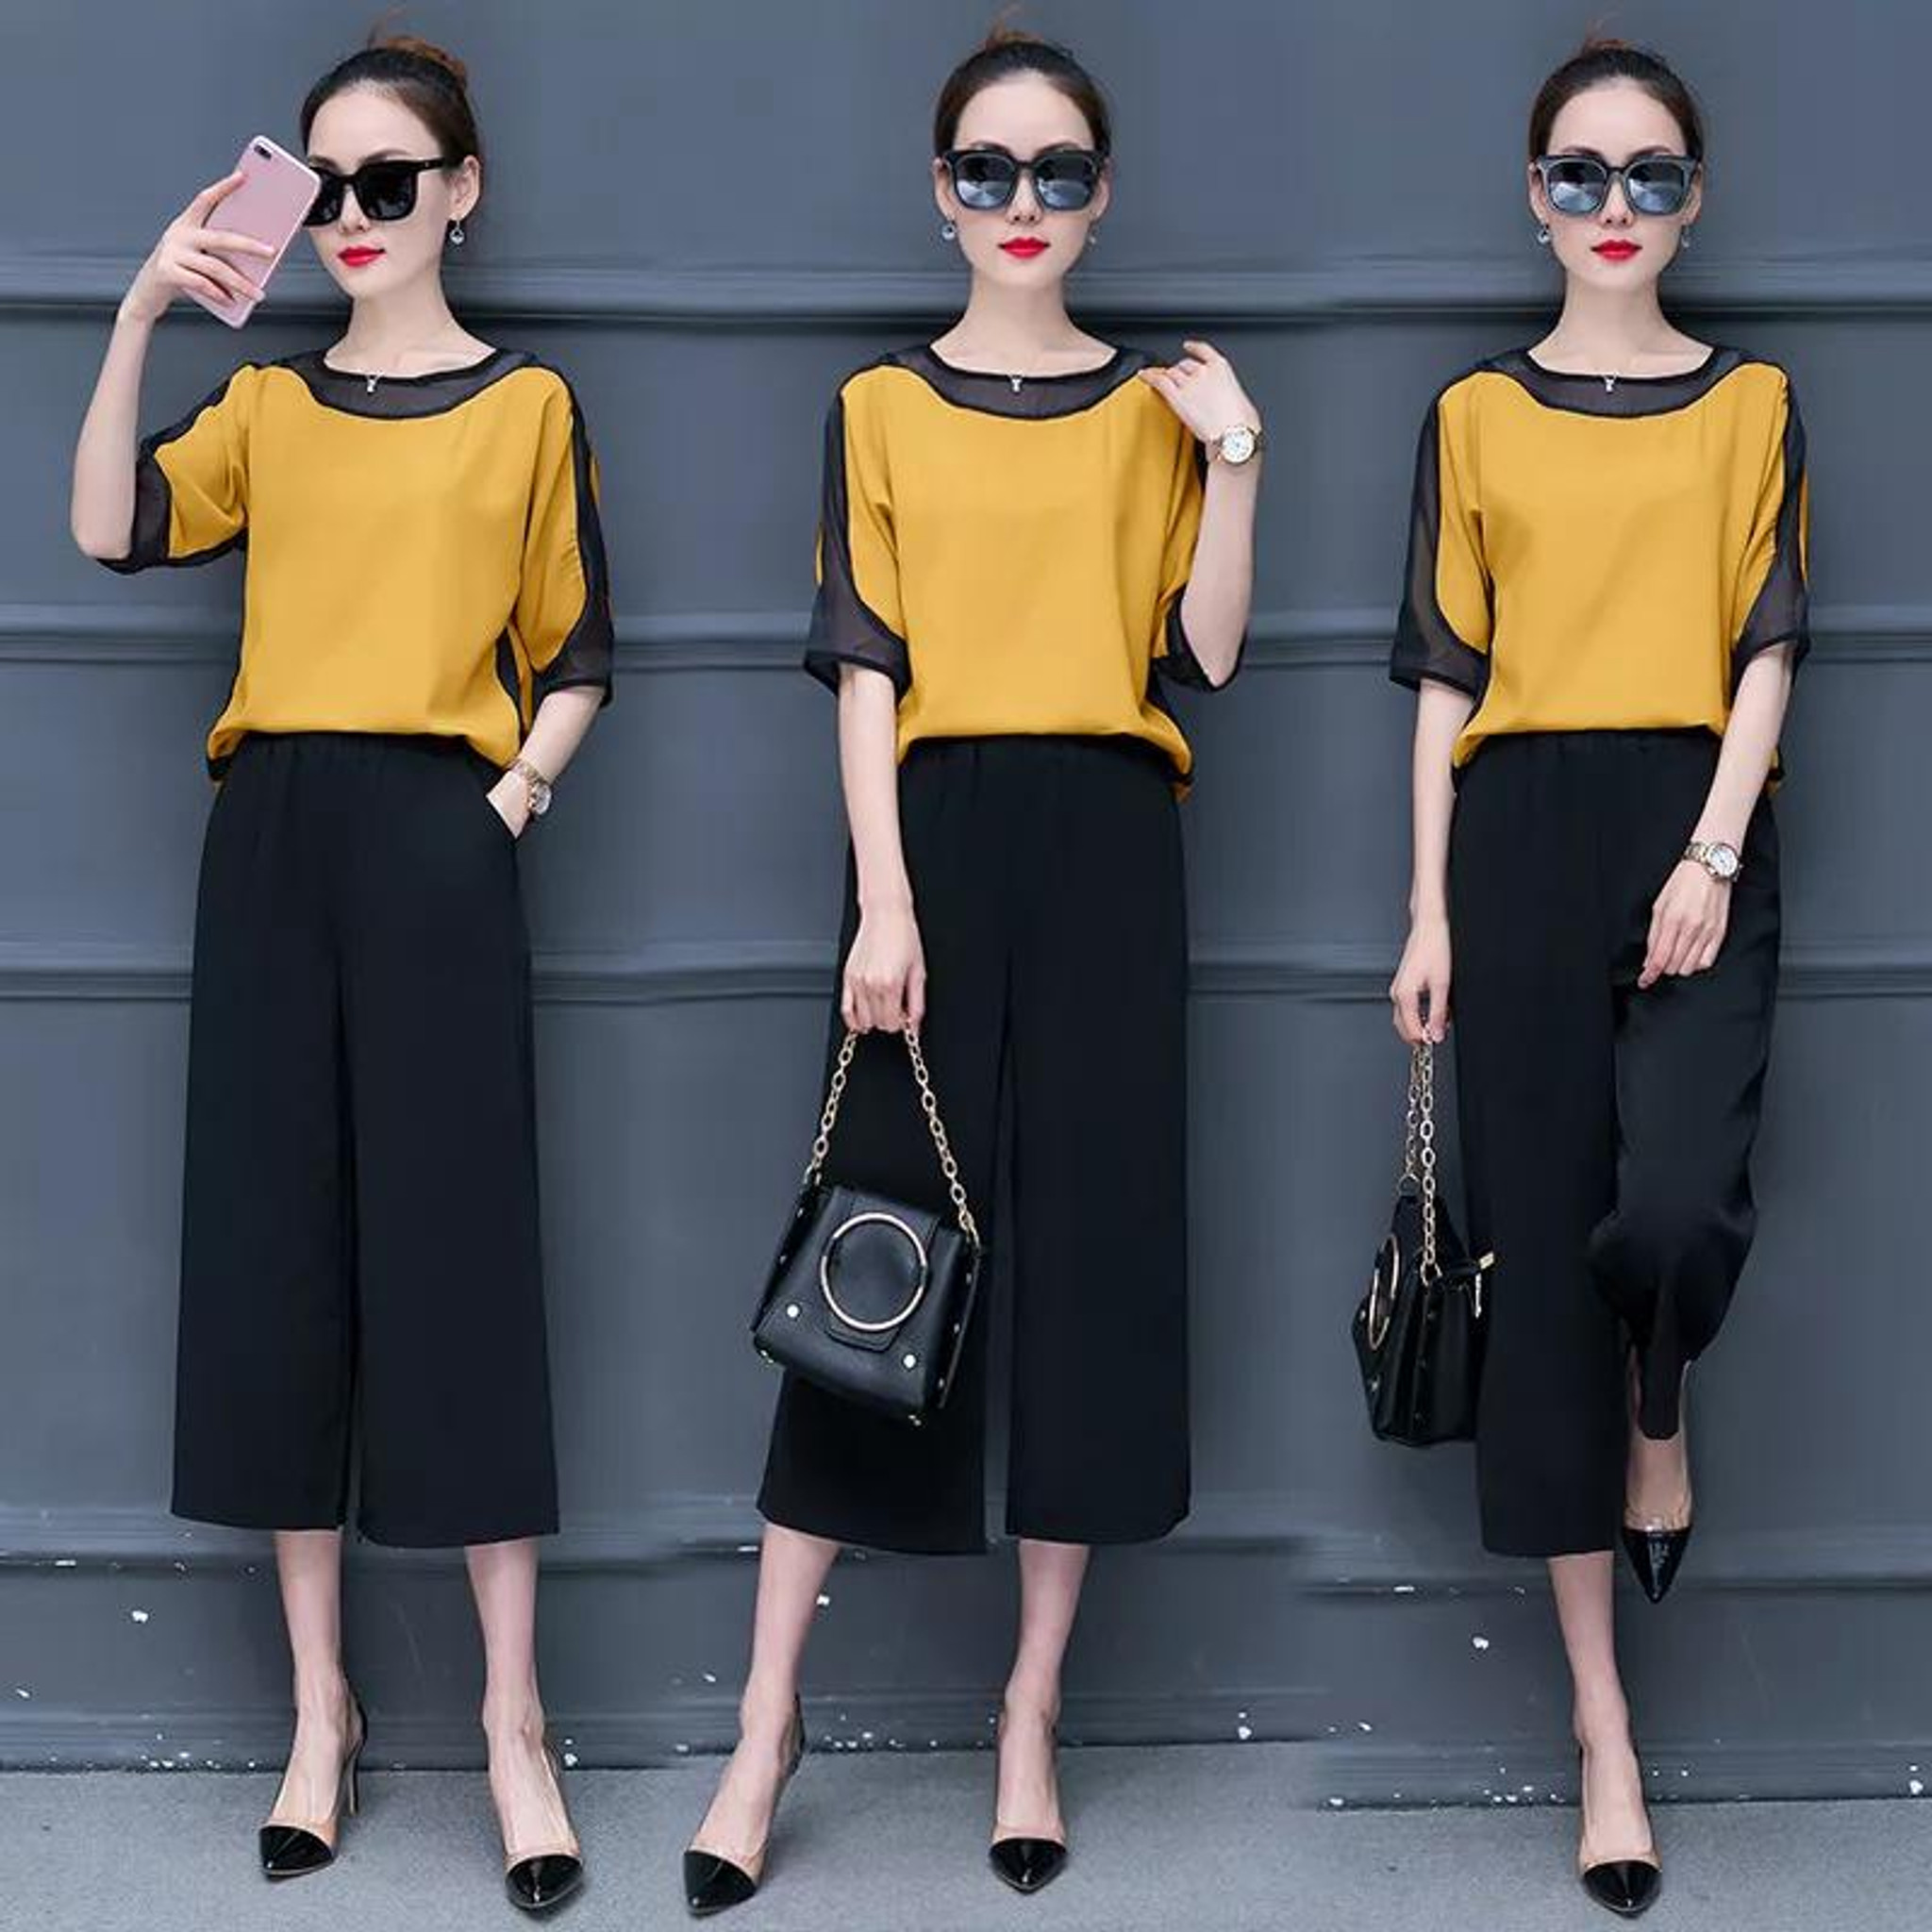 Fifth Avenue Contrast Mesh Panel Top and Pants 2 Piece Set TPS121 - Yellow and Black